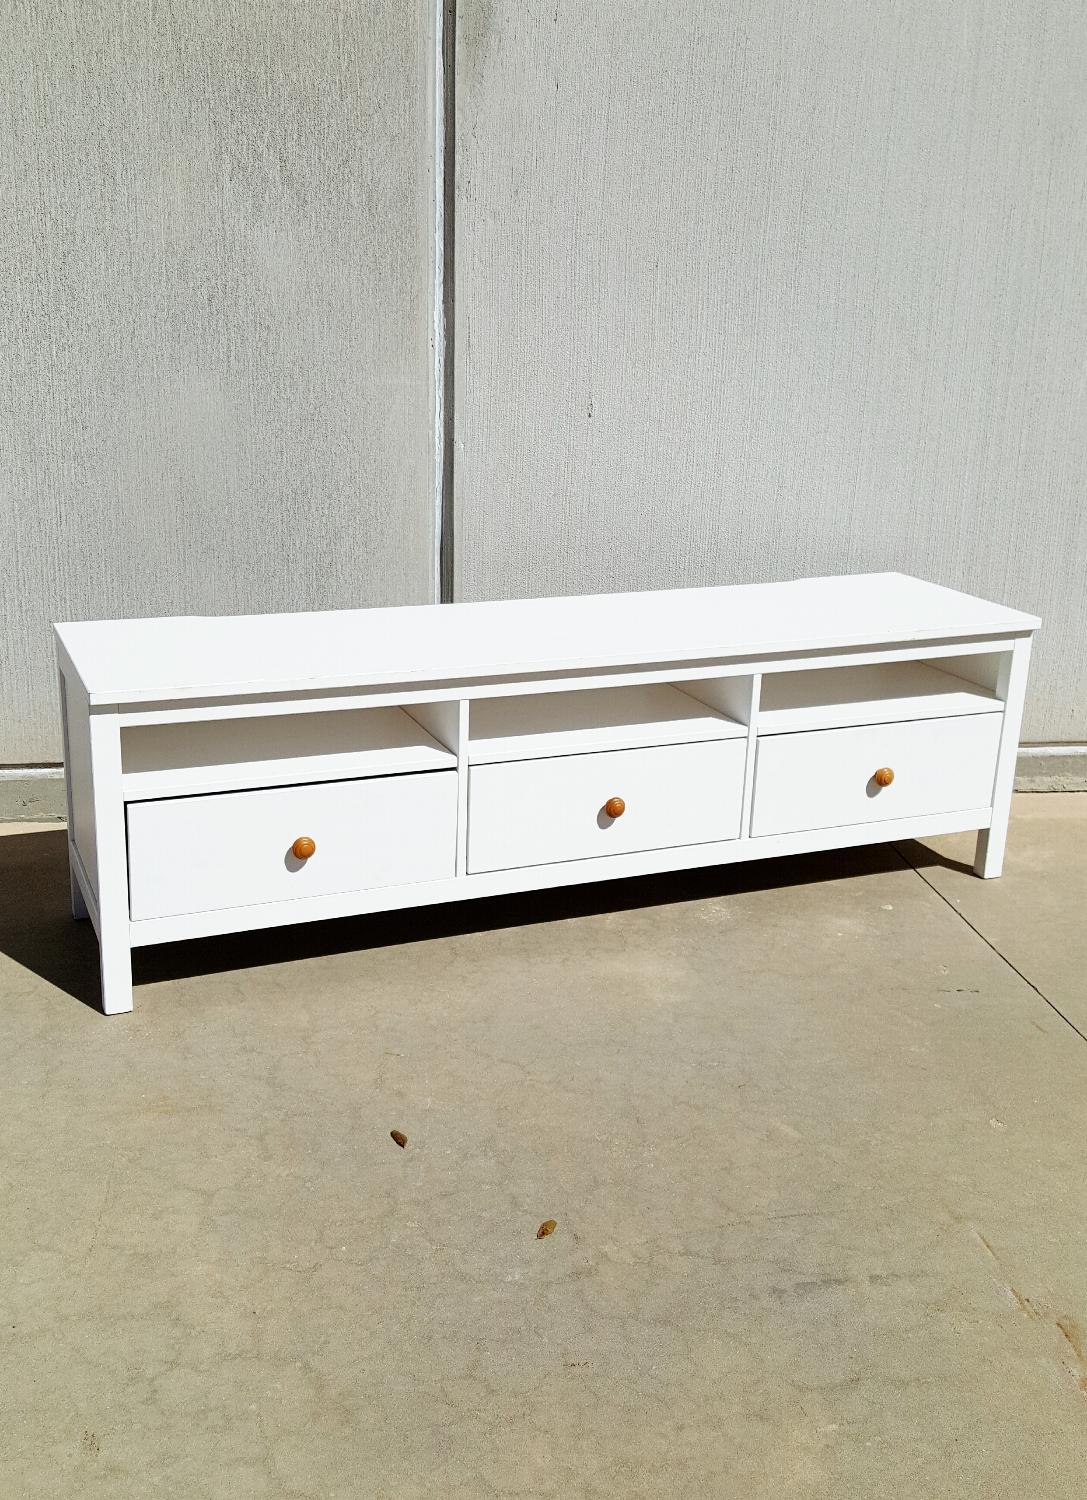 find more like new ikea hemnes tv media console white wash for sale at up to 90 off deland fl. Black Bedroom Furniture Sets. Home Design Ideas